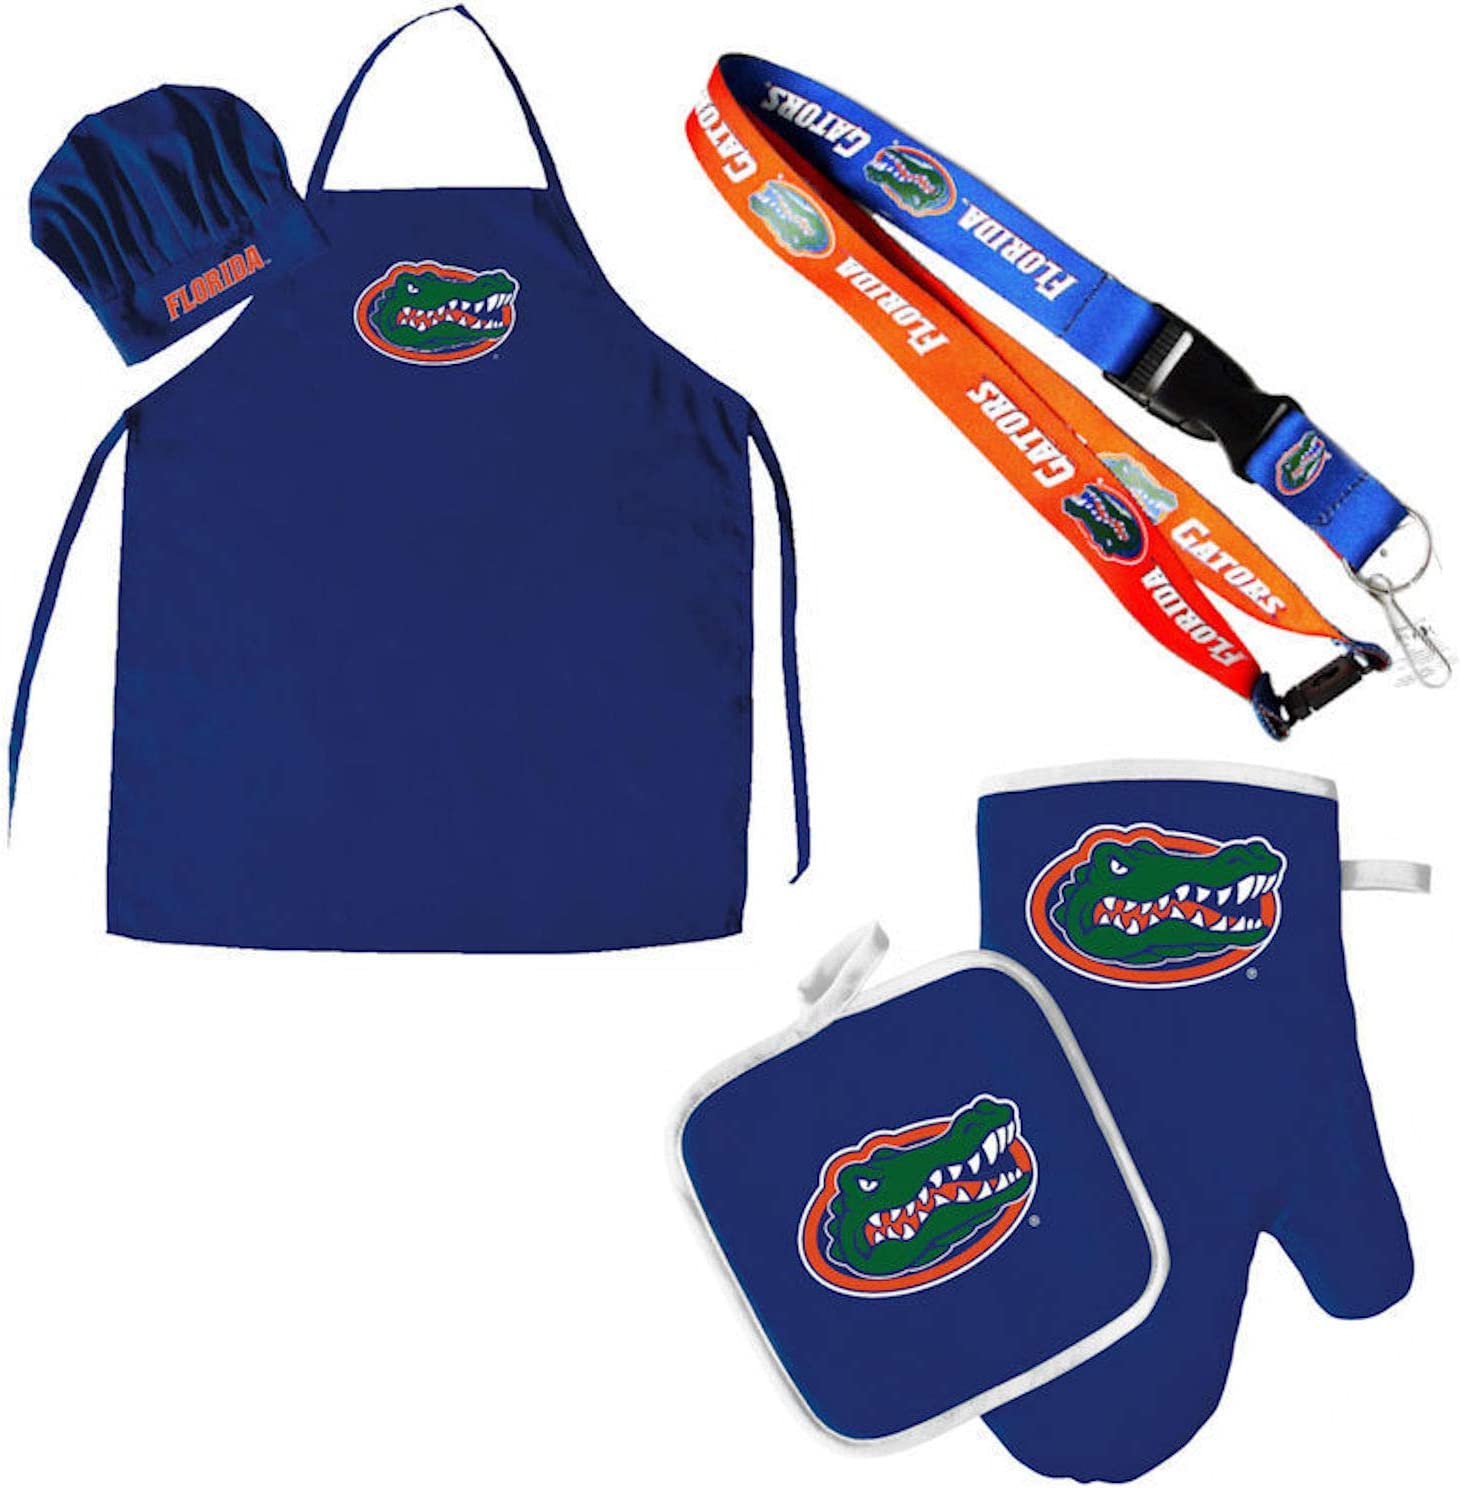 Pro Specialties Group Florida Gators Chef hat Apron and Oven mitt Pot Holder BBQ Tailgate Set Lanyard